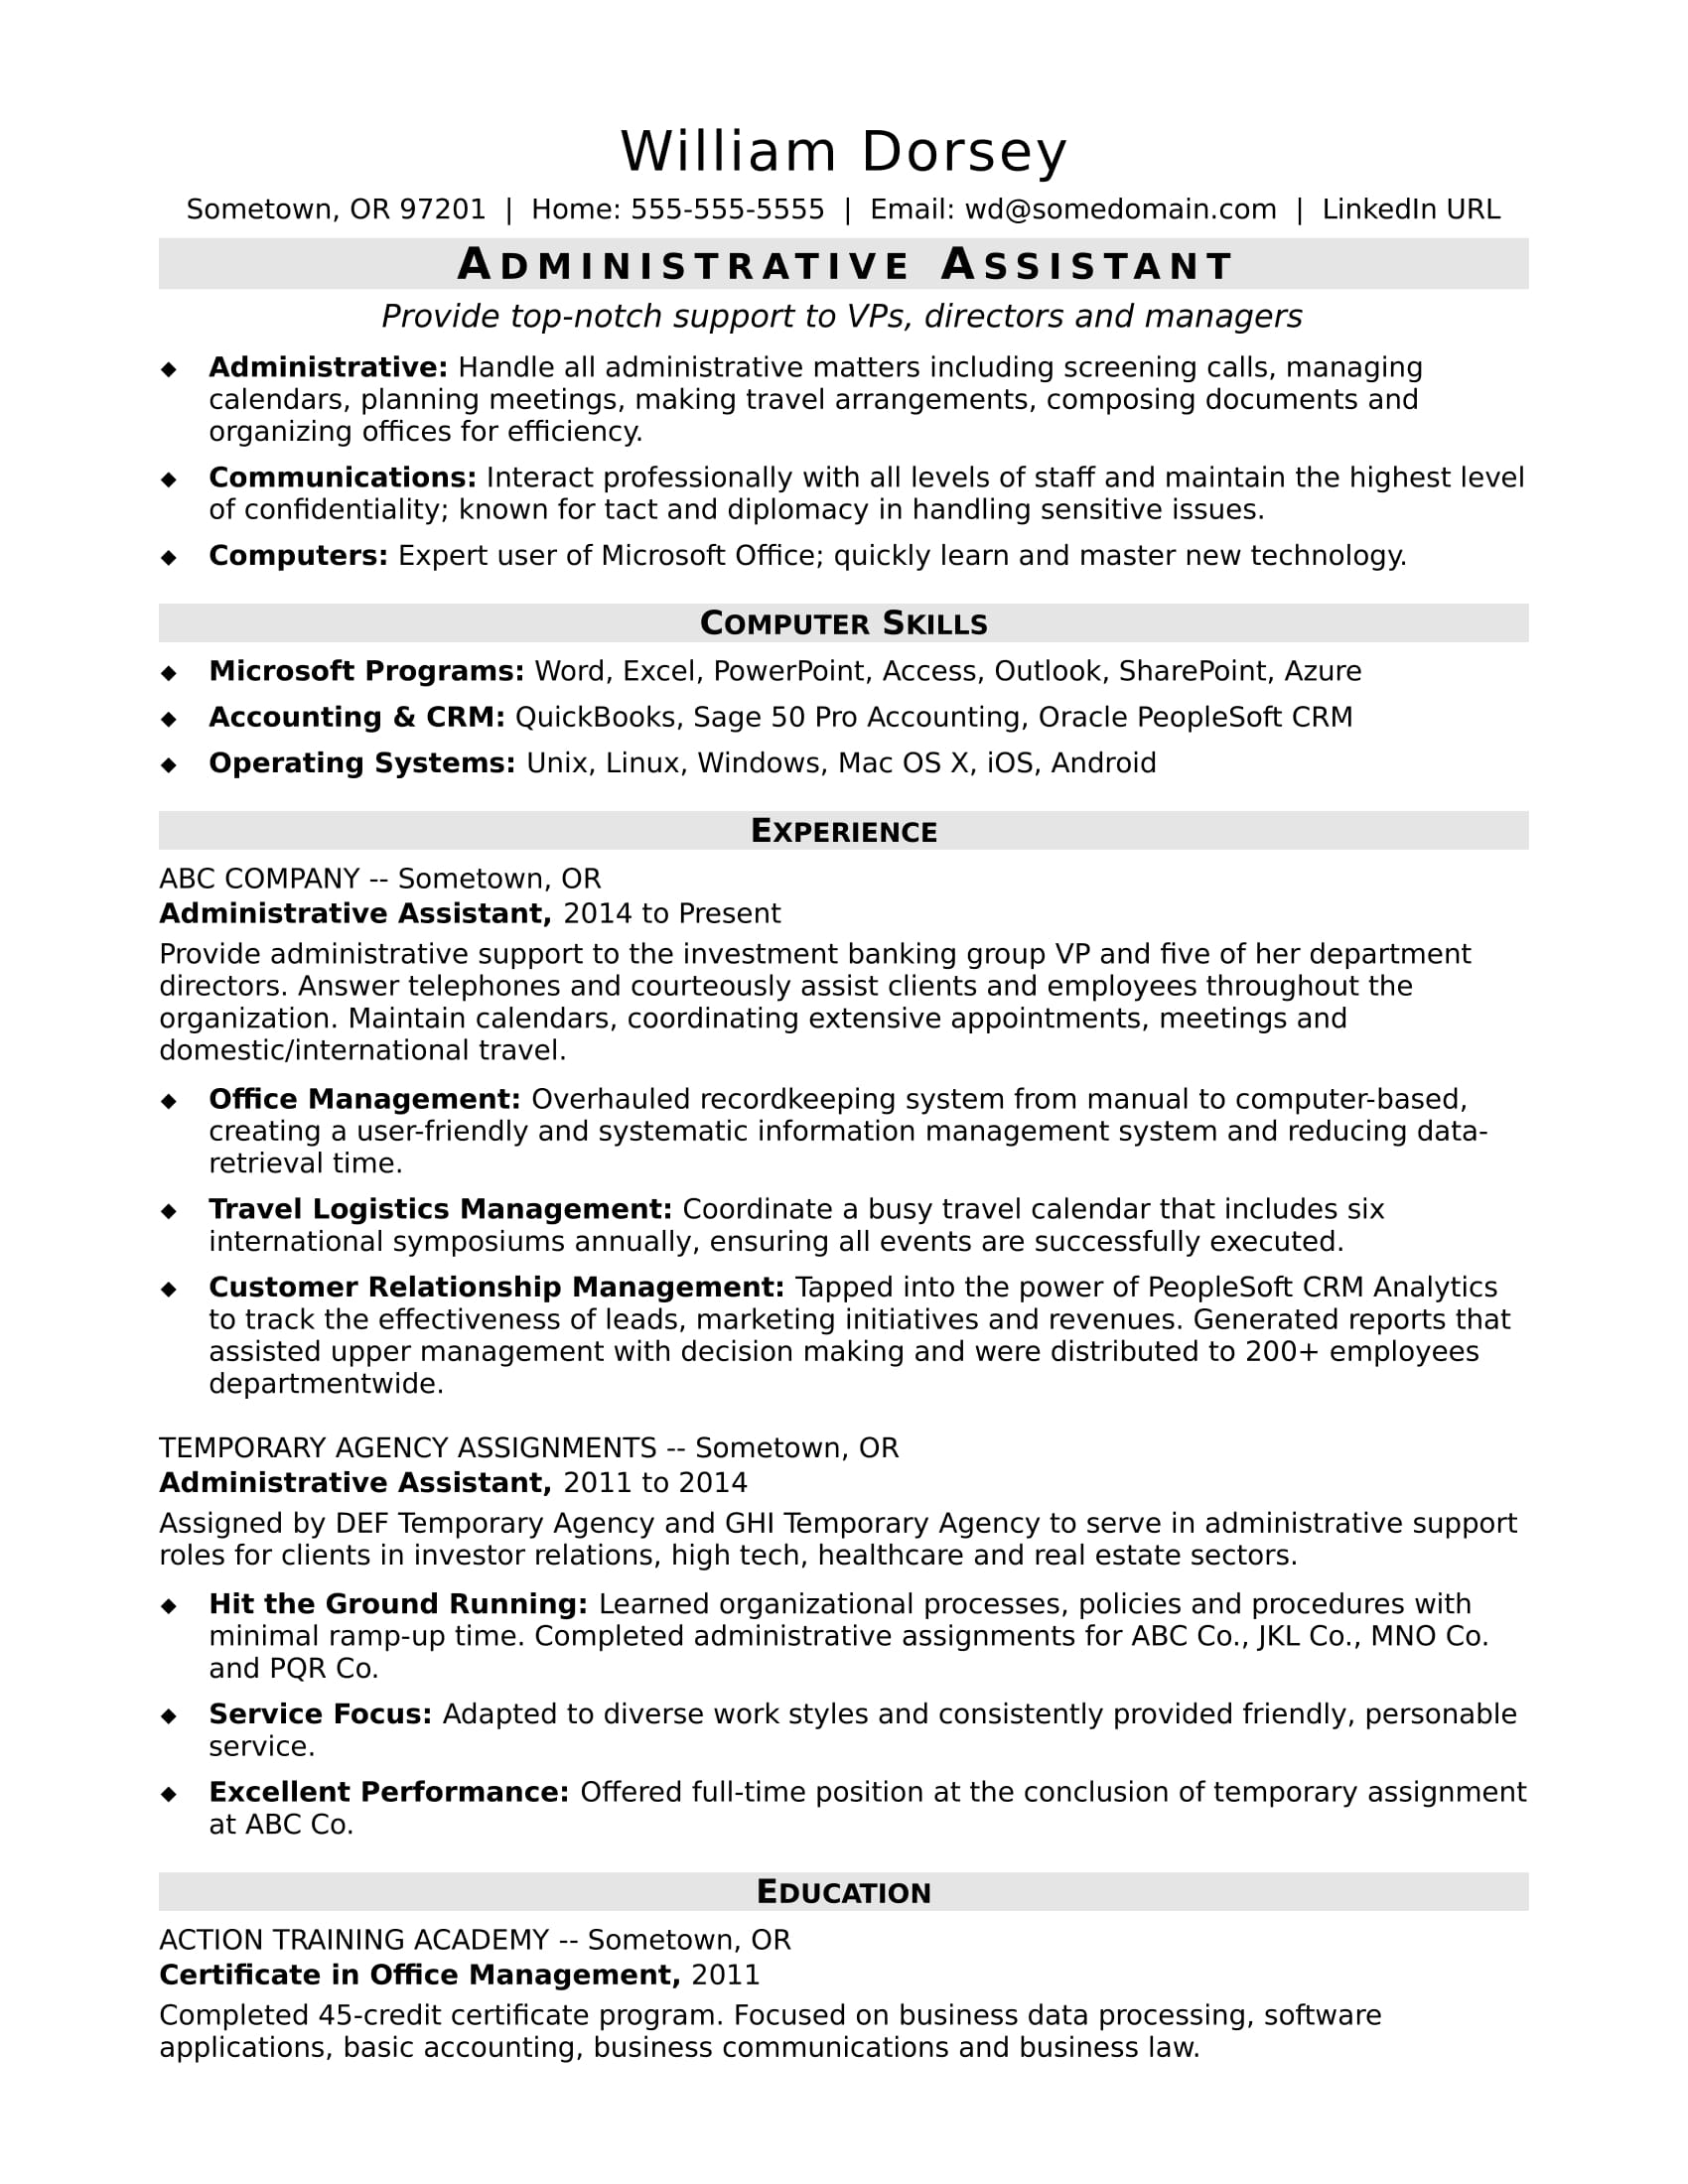 midlevel administrative assistant resume sample monster executive painter skills for Resume Executive Assistant Resume